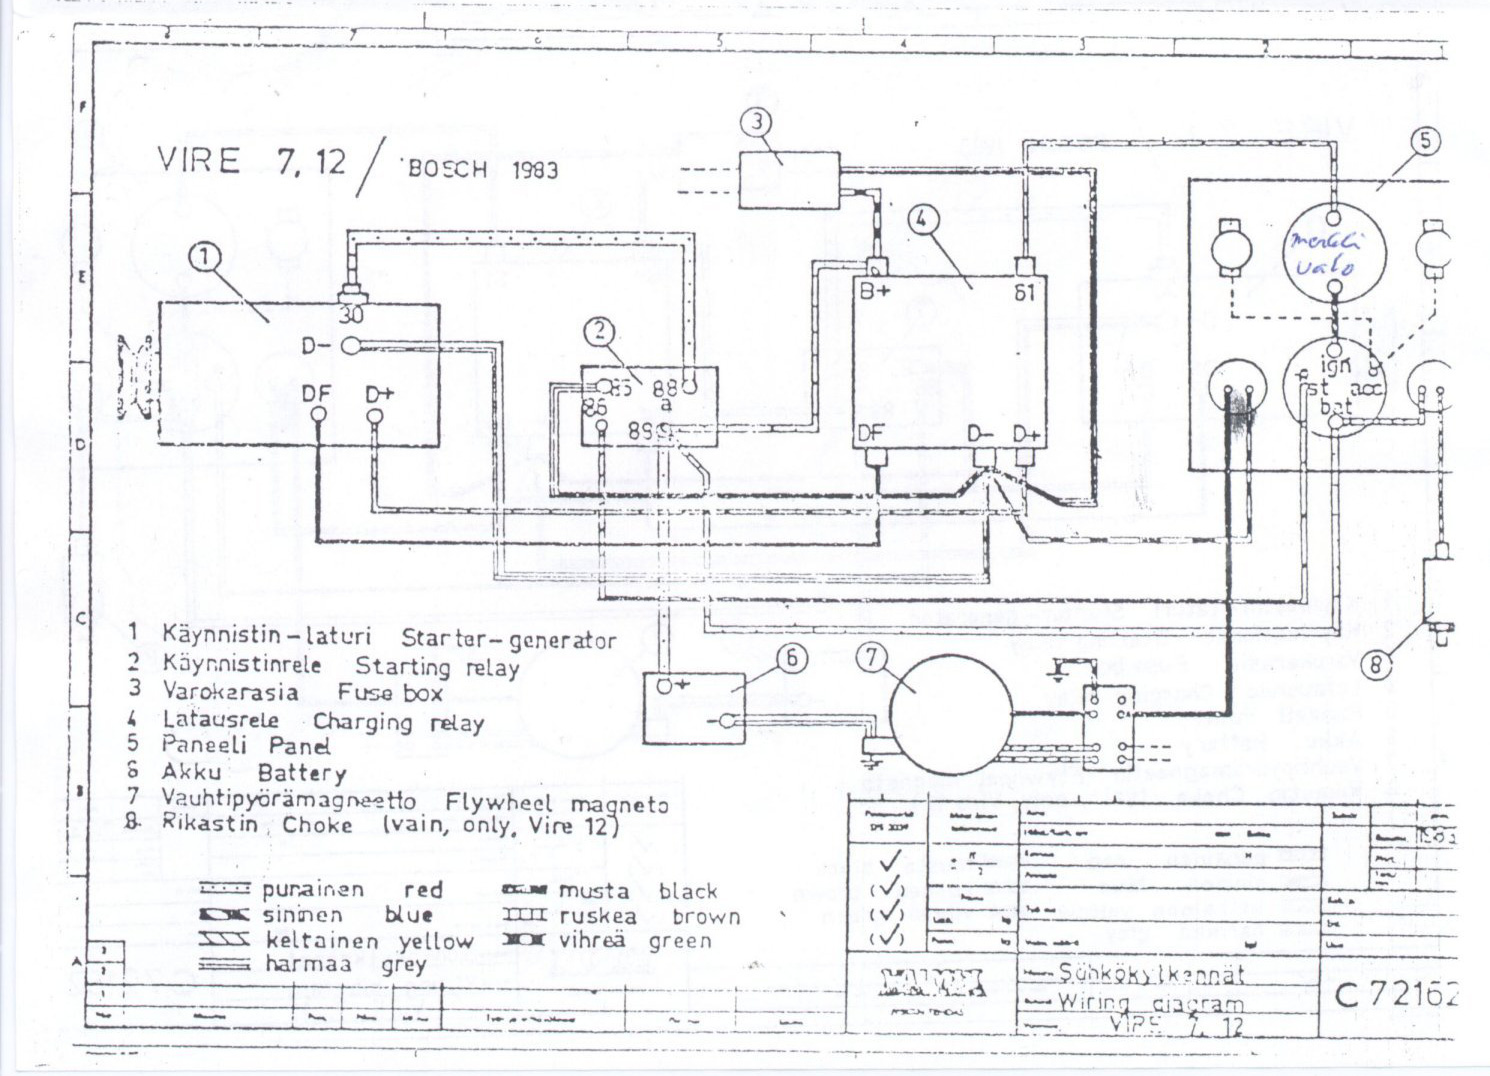 Generator Wiring Schematic Another Blog About Diagram Honda Schematics Delco Remy Starter Get Free Electrical Generac